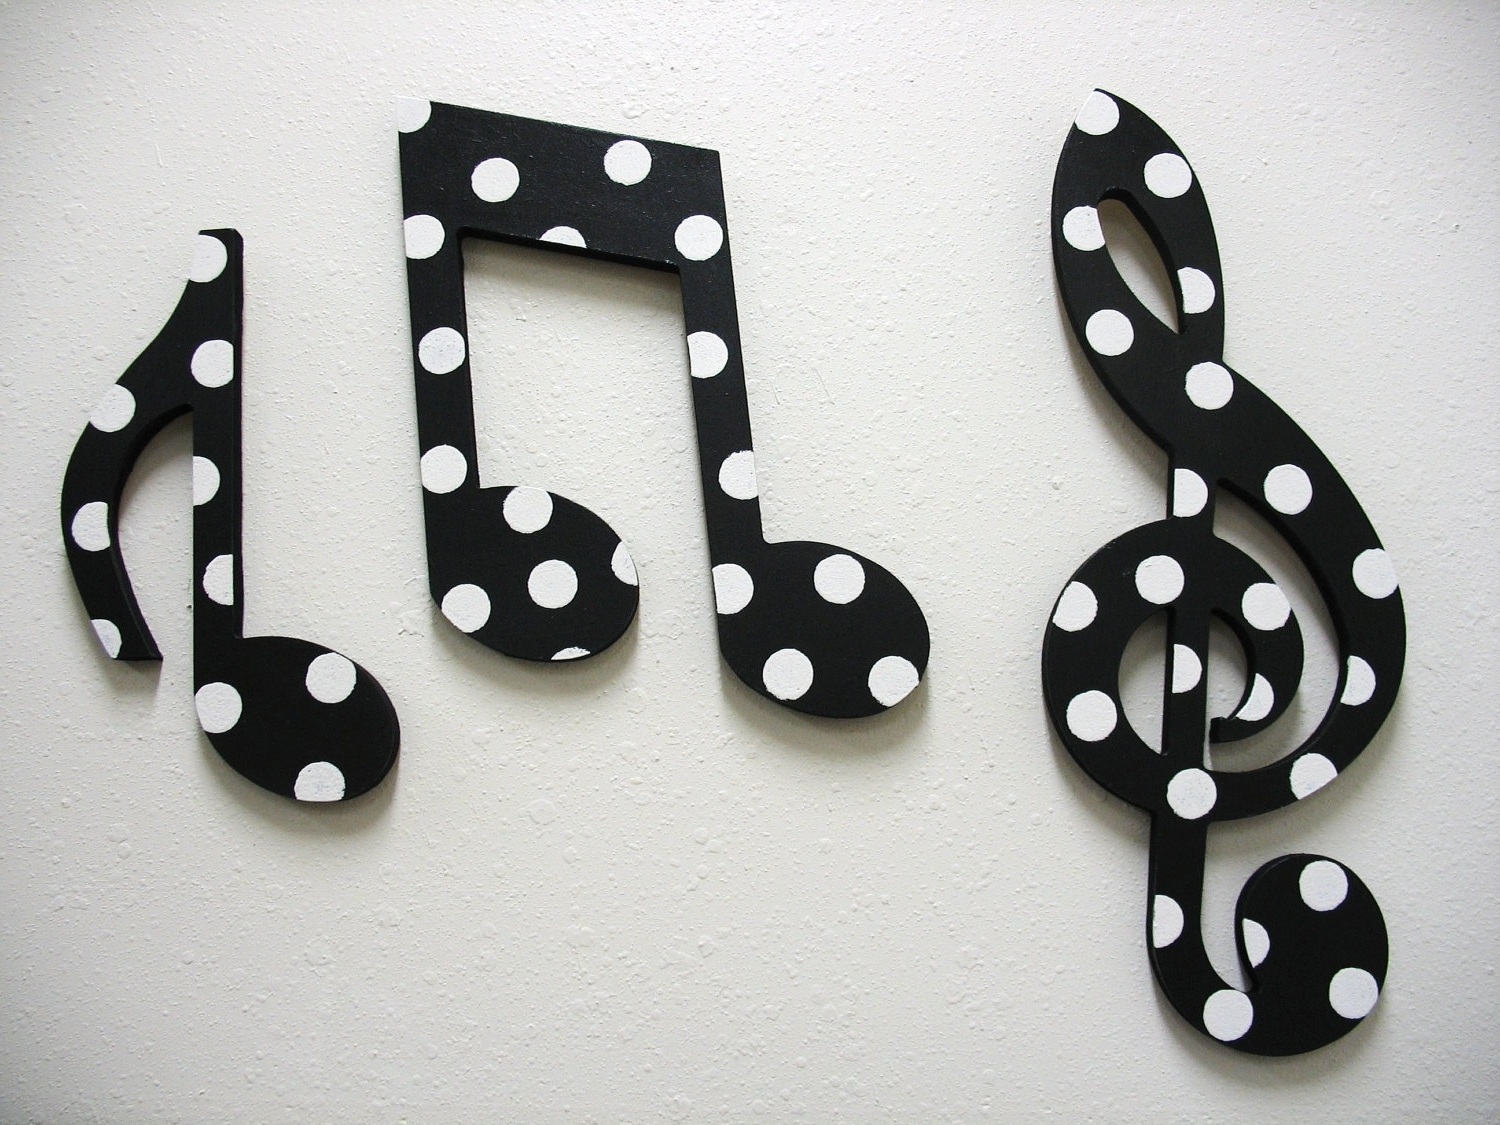 Music Notes Wall Decor Black (View 15 of 15)